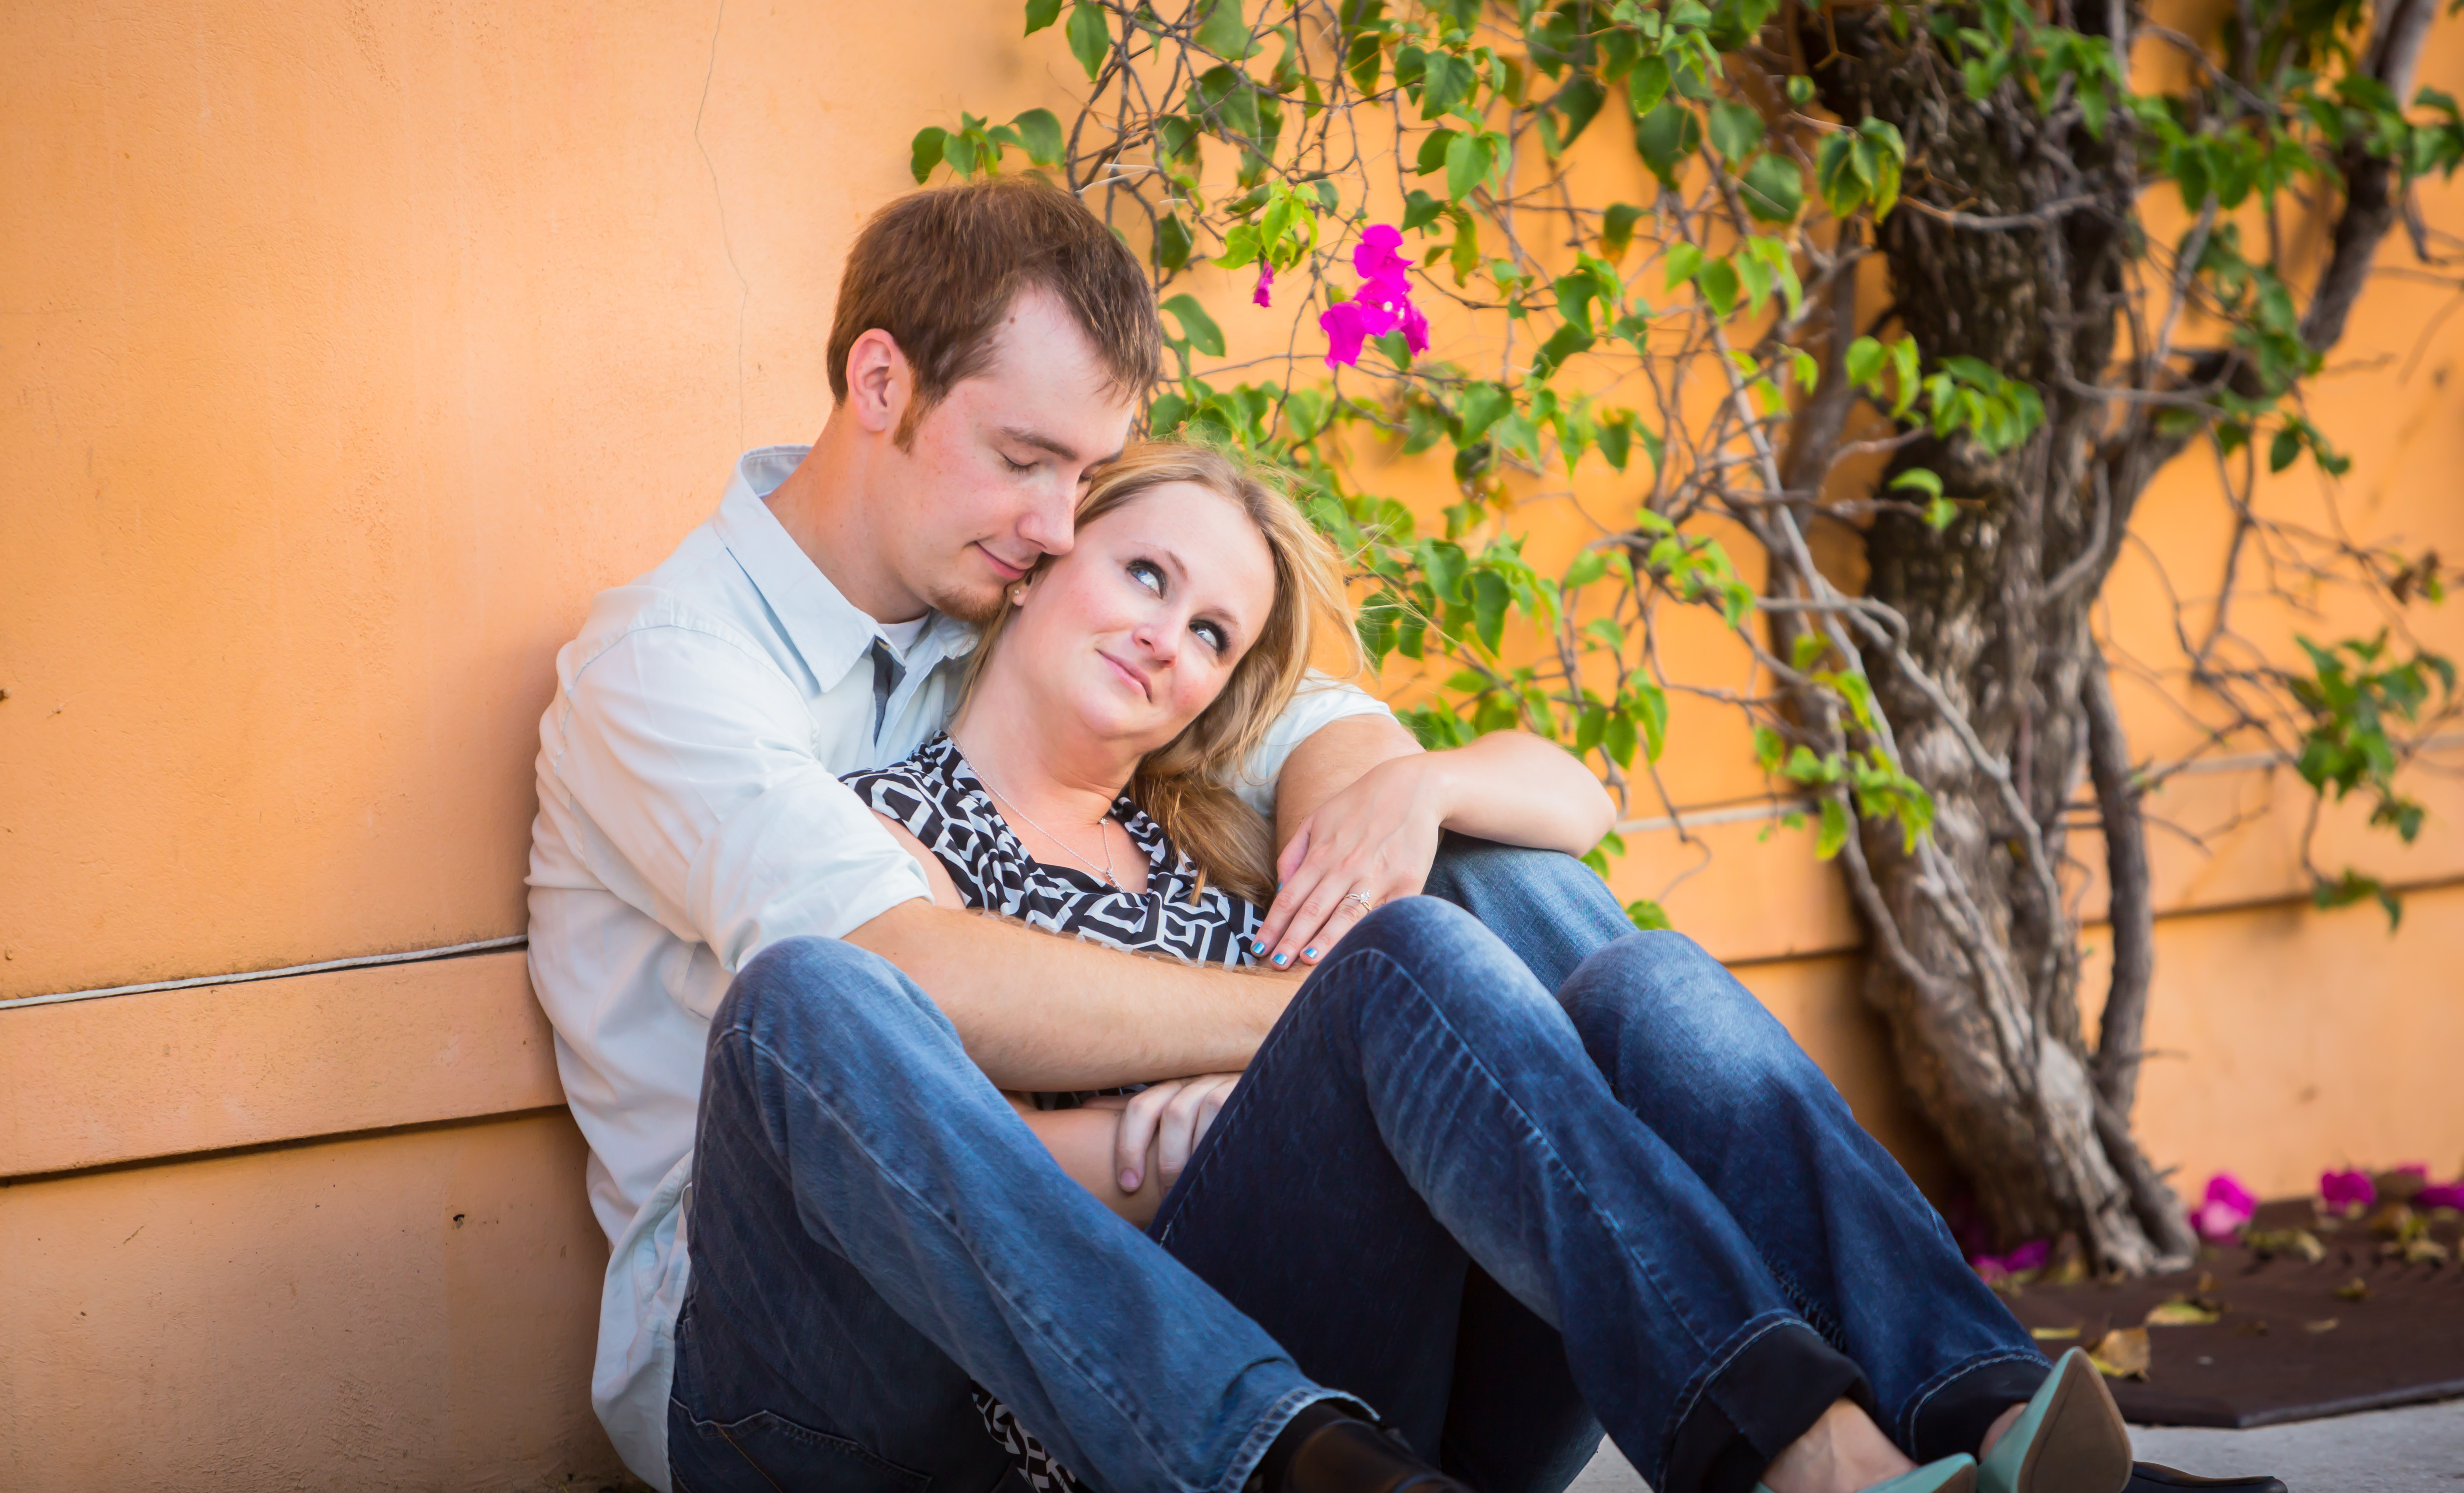 Couture Bridal Photography explains the benefits of a having an engagement session to prepare you for your wedding photography and also set the tone for your wedding photography on wedding day!